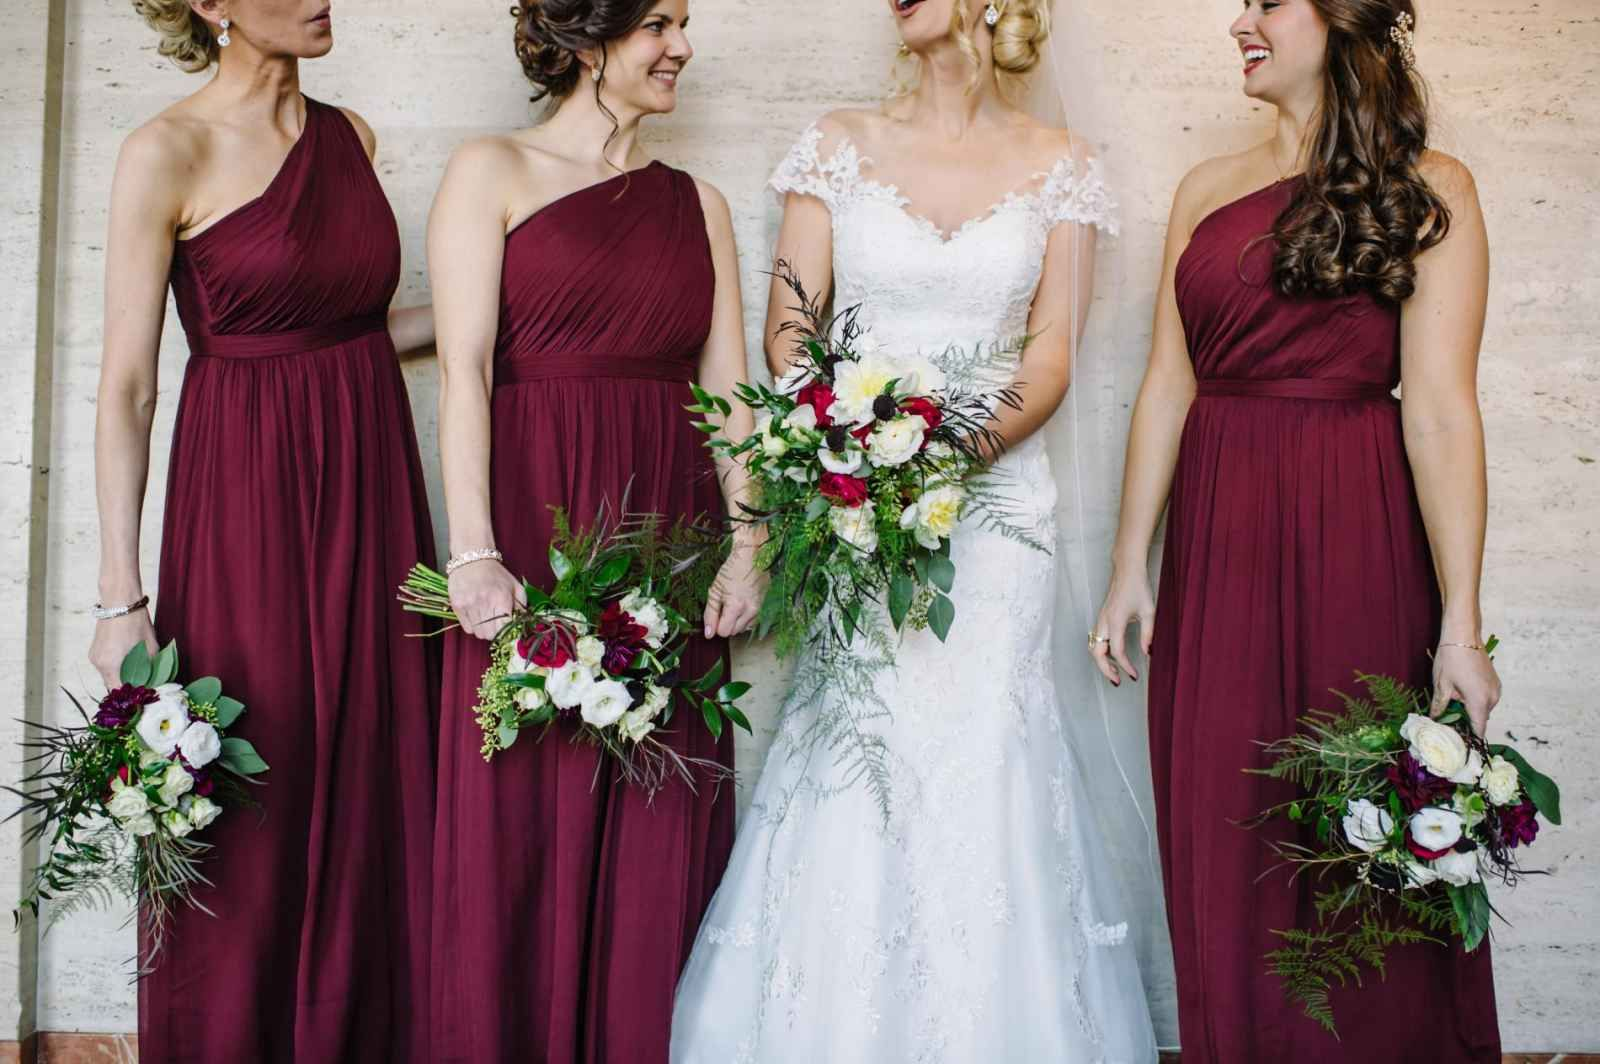 Burgundy bridesmaids dresses for winter wedding the wedding burgundy bridesmaids dresses for winter wedding the wedding story of nina and marc kieleszewski ombrellifo Images